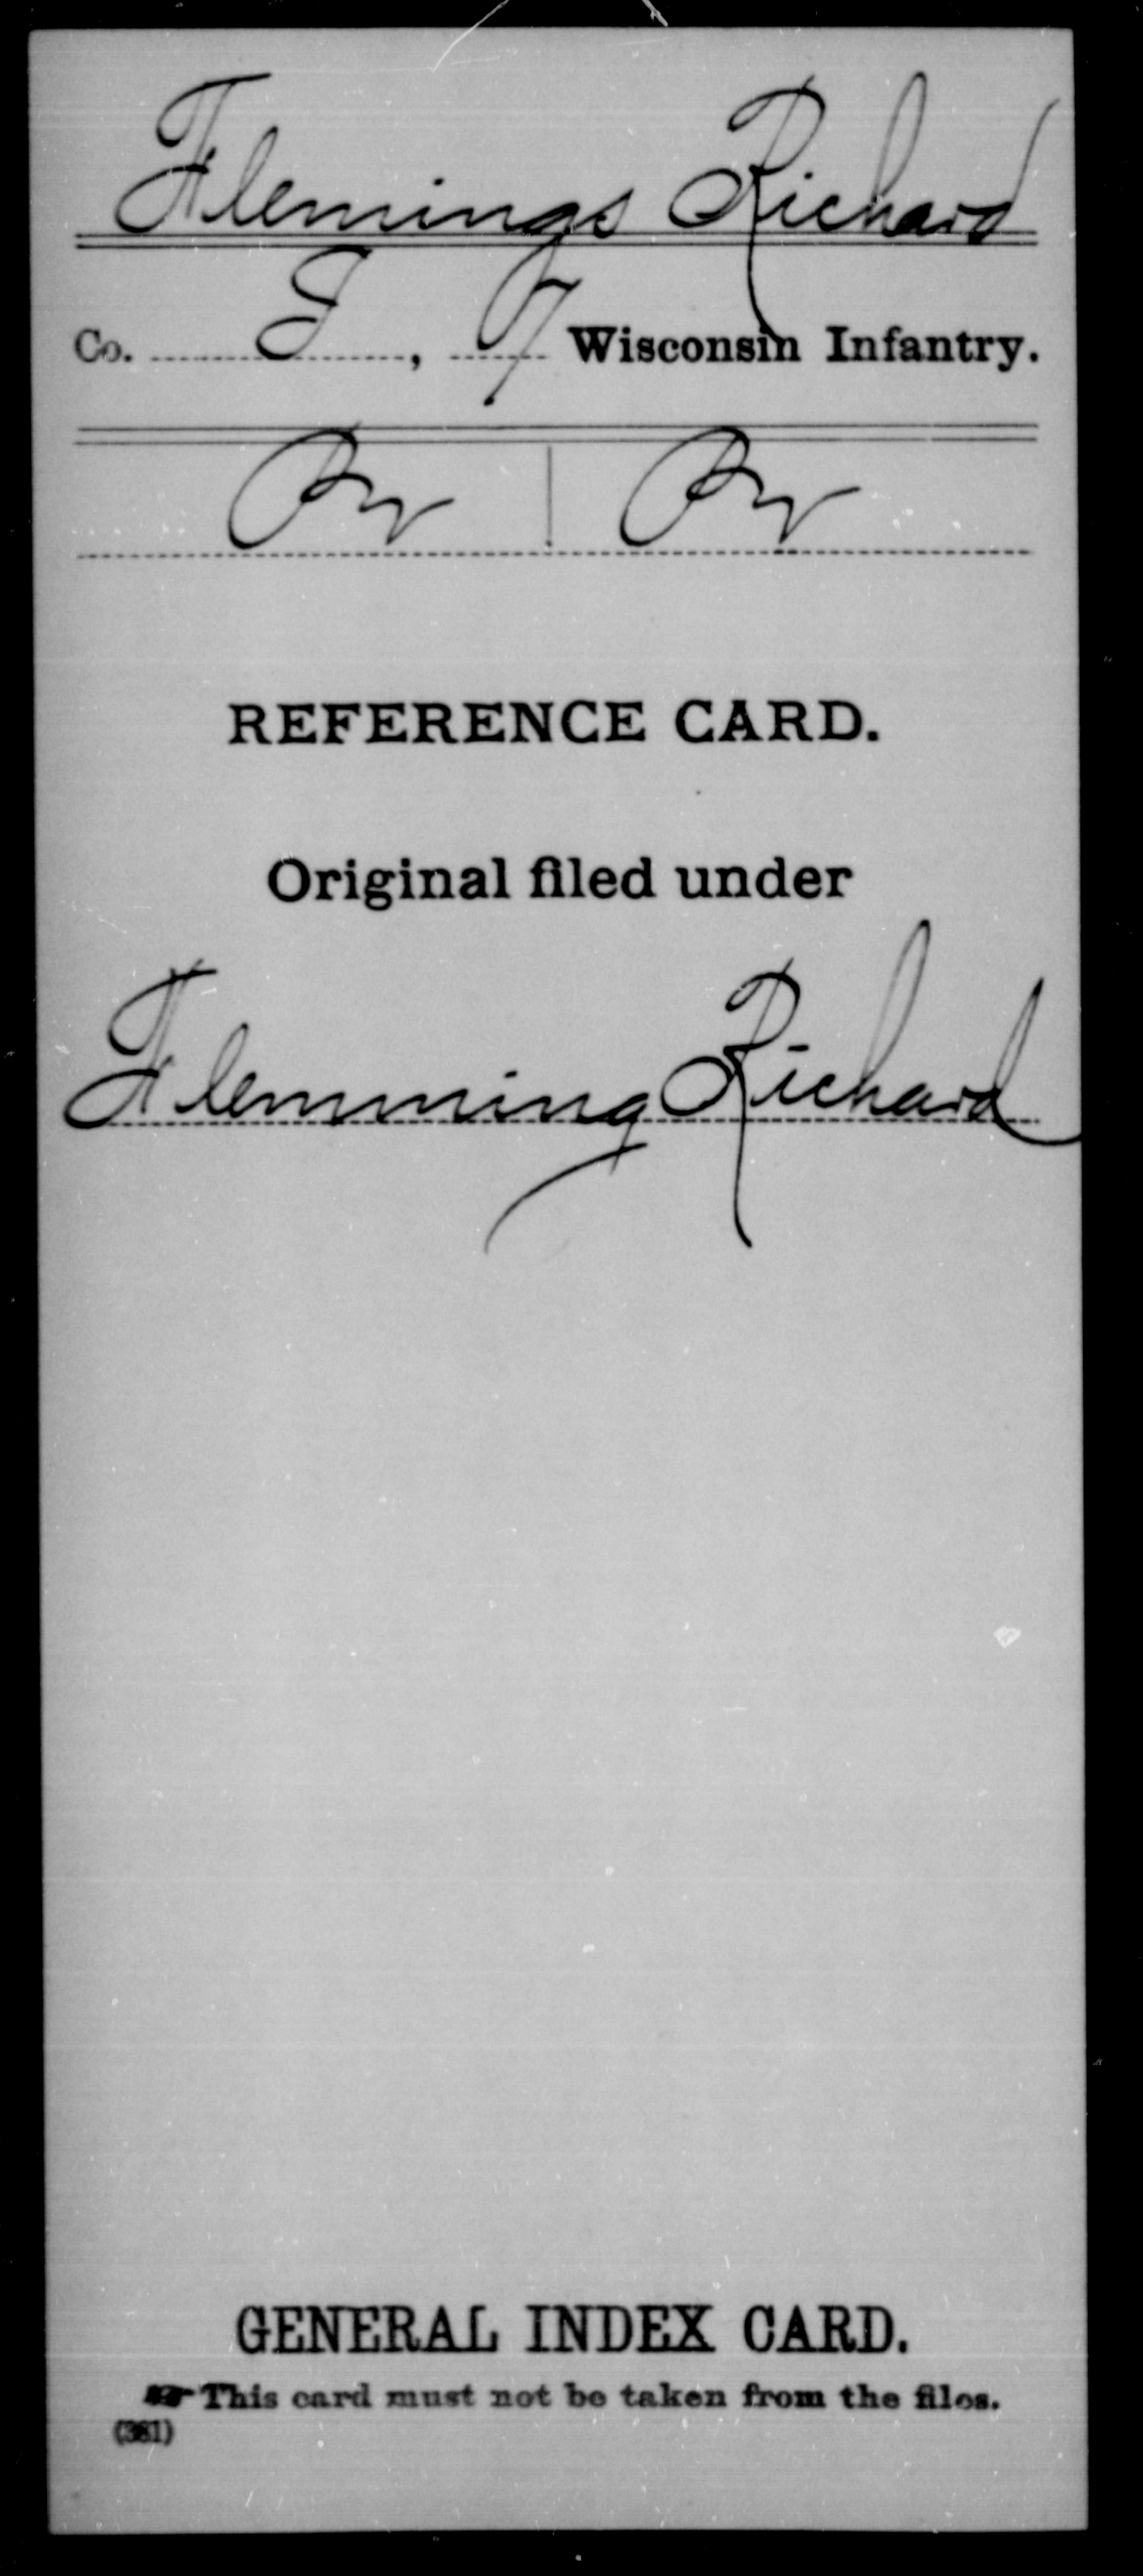 [Wisconsin] Flemings, Richard - 7th Infantry, Company I